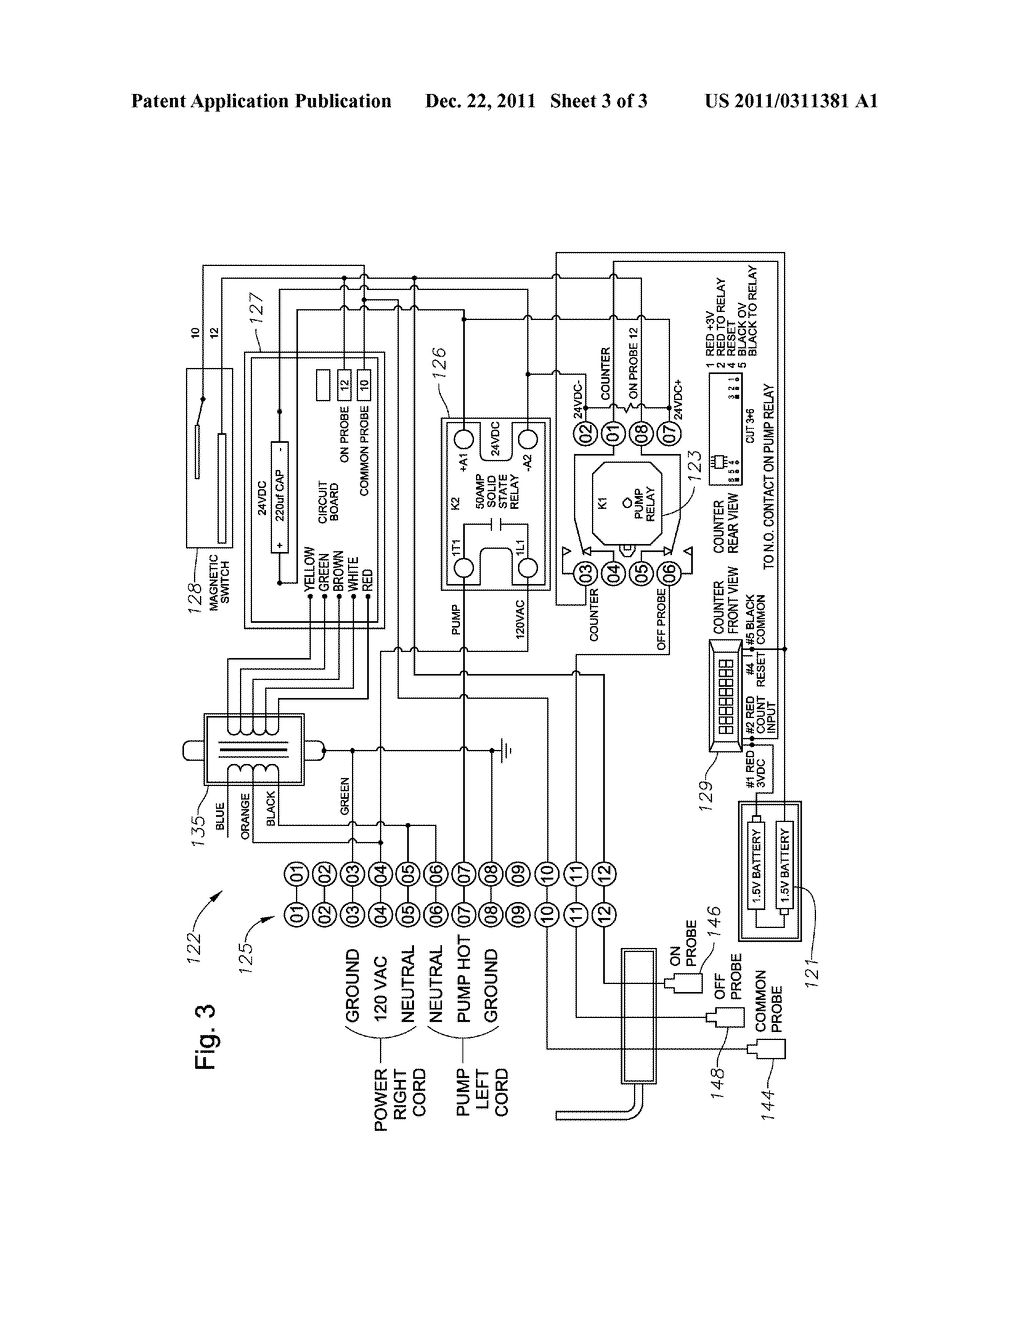 hight resolution of solid state sump pump control diagram schematic and image 04 rh patentsencyclopedia com radon and sump pump duplex sump pump detail